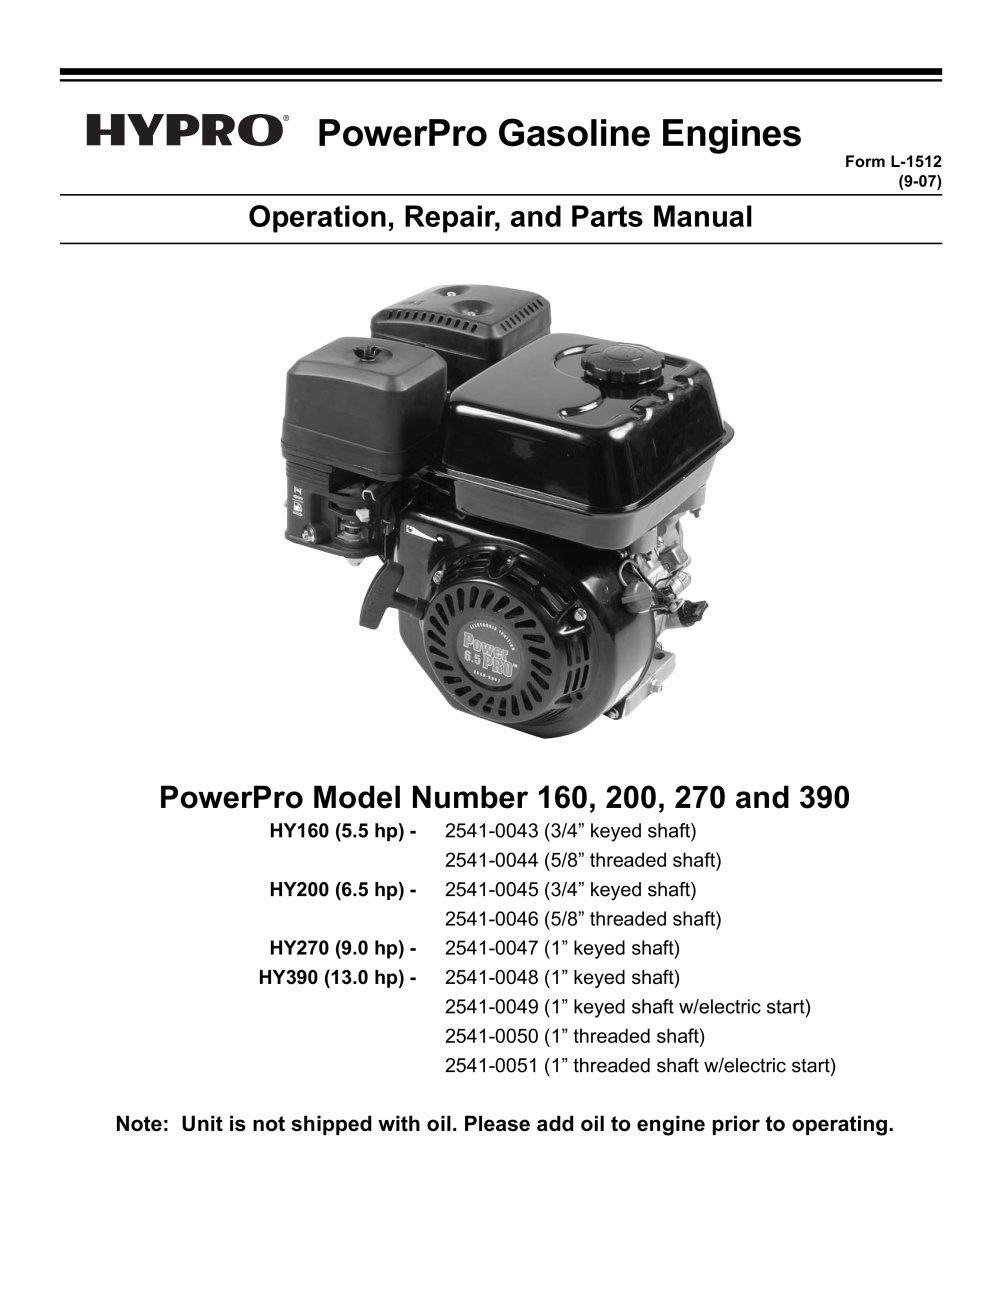 Powerpro Engine Operation Installation Parts Manual Hypro Diagram 1 28 Pages